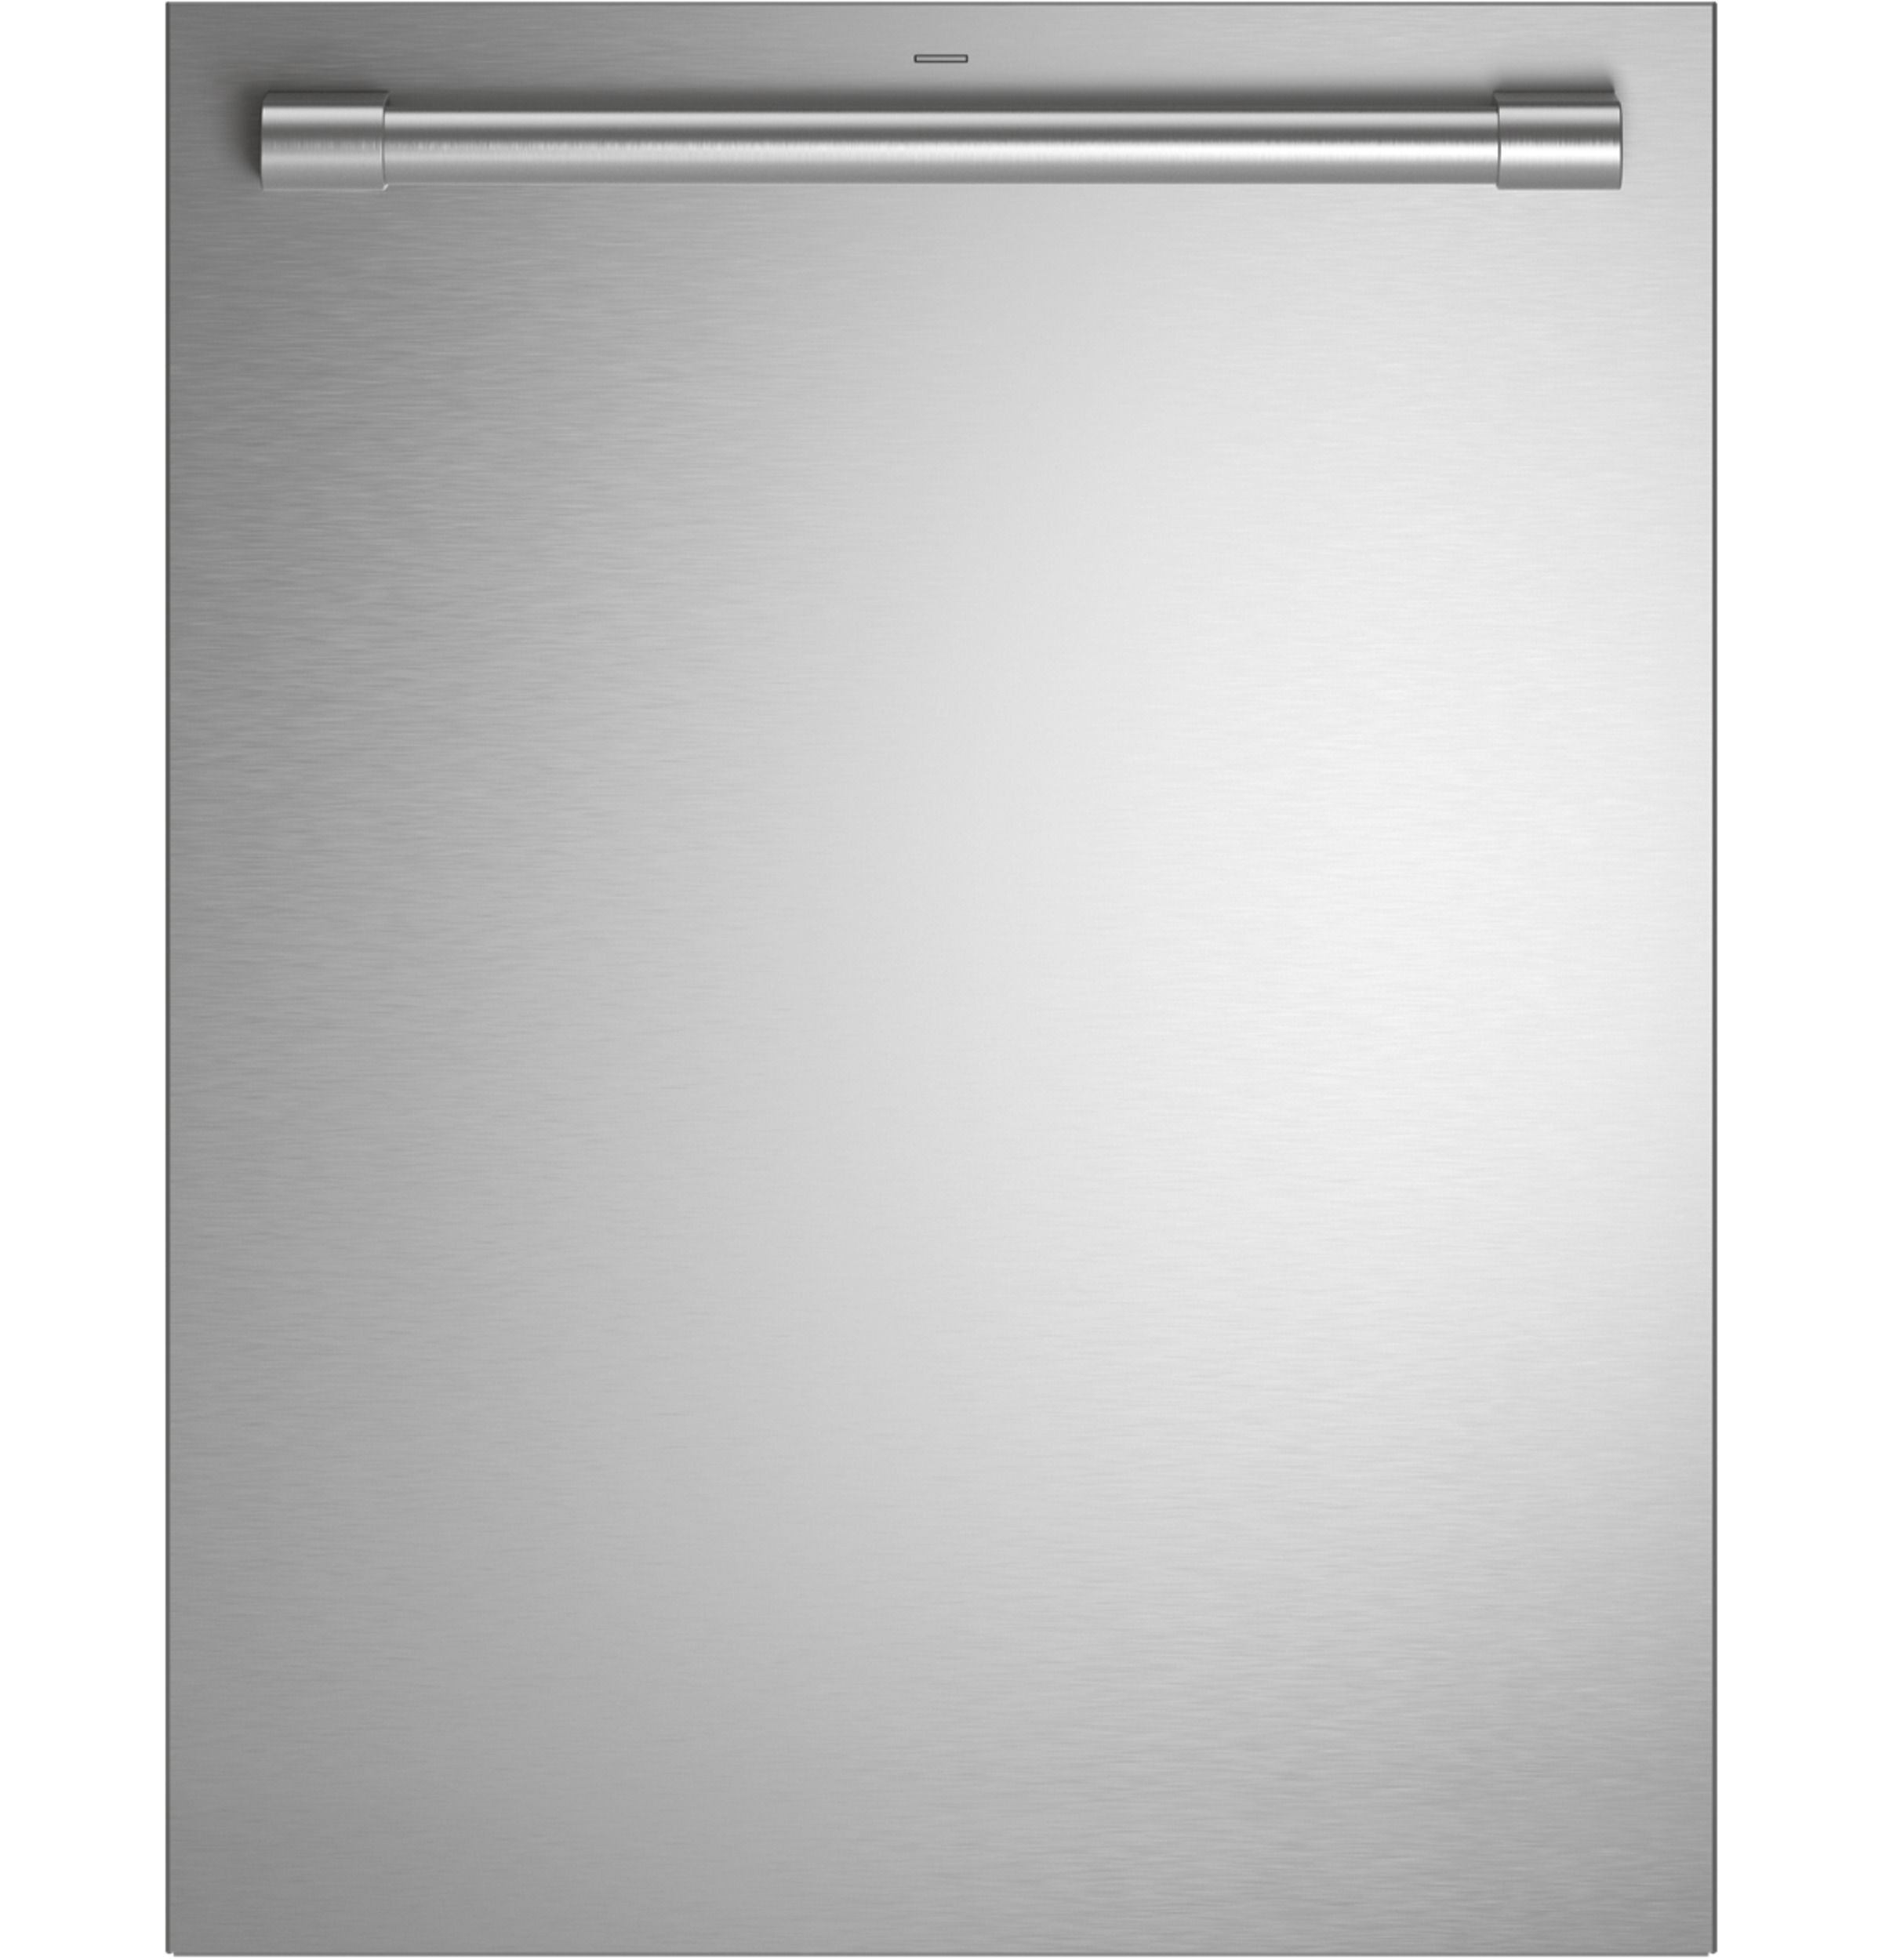 Monogram Dishwasher ZDT925SPNSS